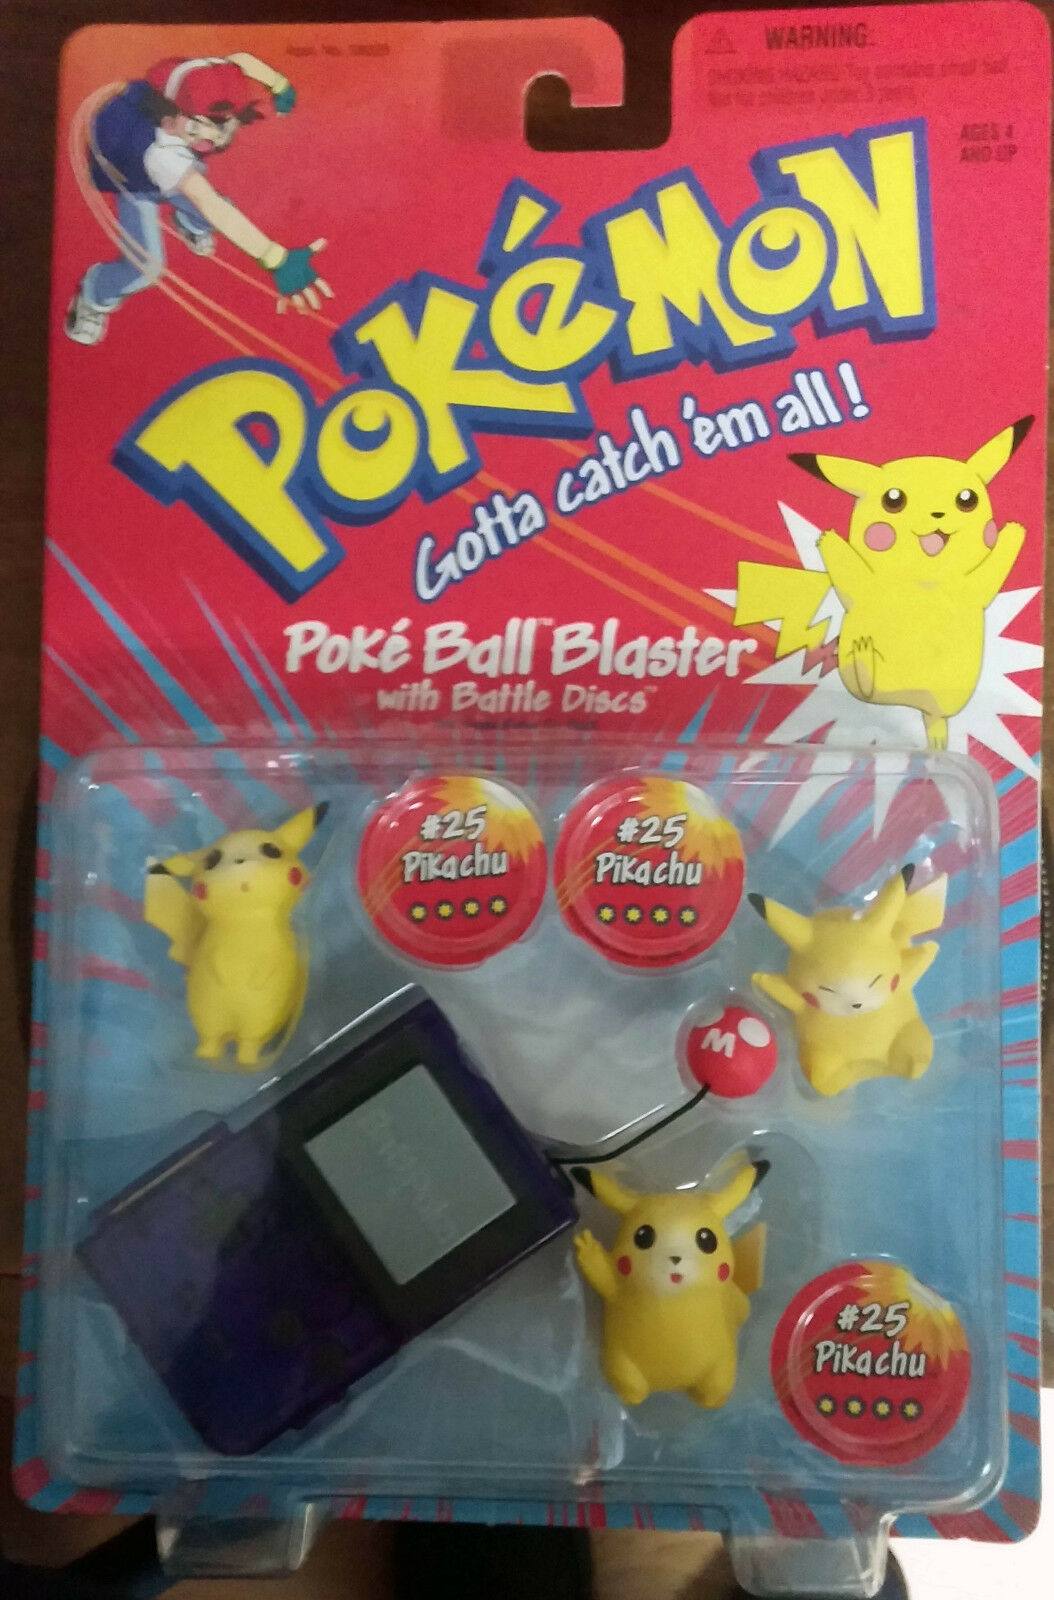 Vintage POKEMON Poke BALL BLASTER with battle discsTHREE PIKACHU  25 by Hasbro